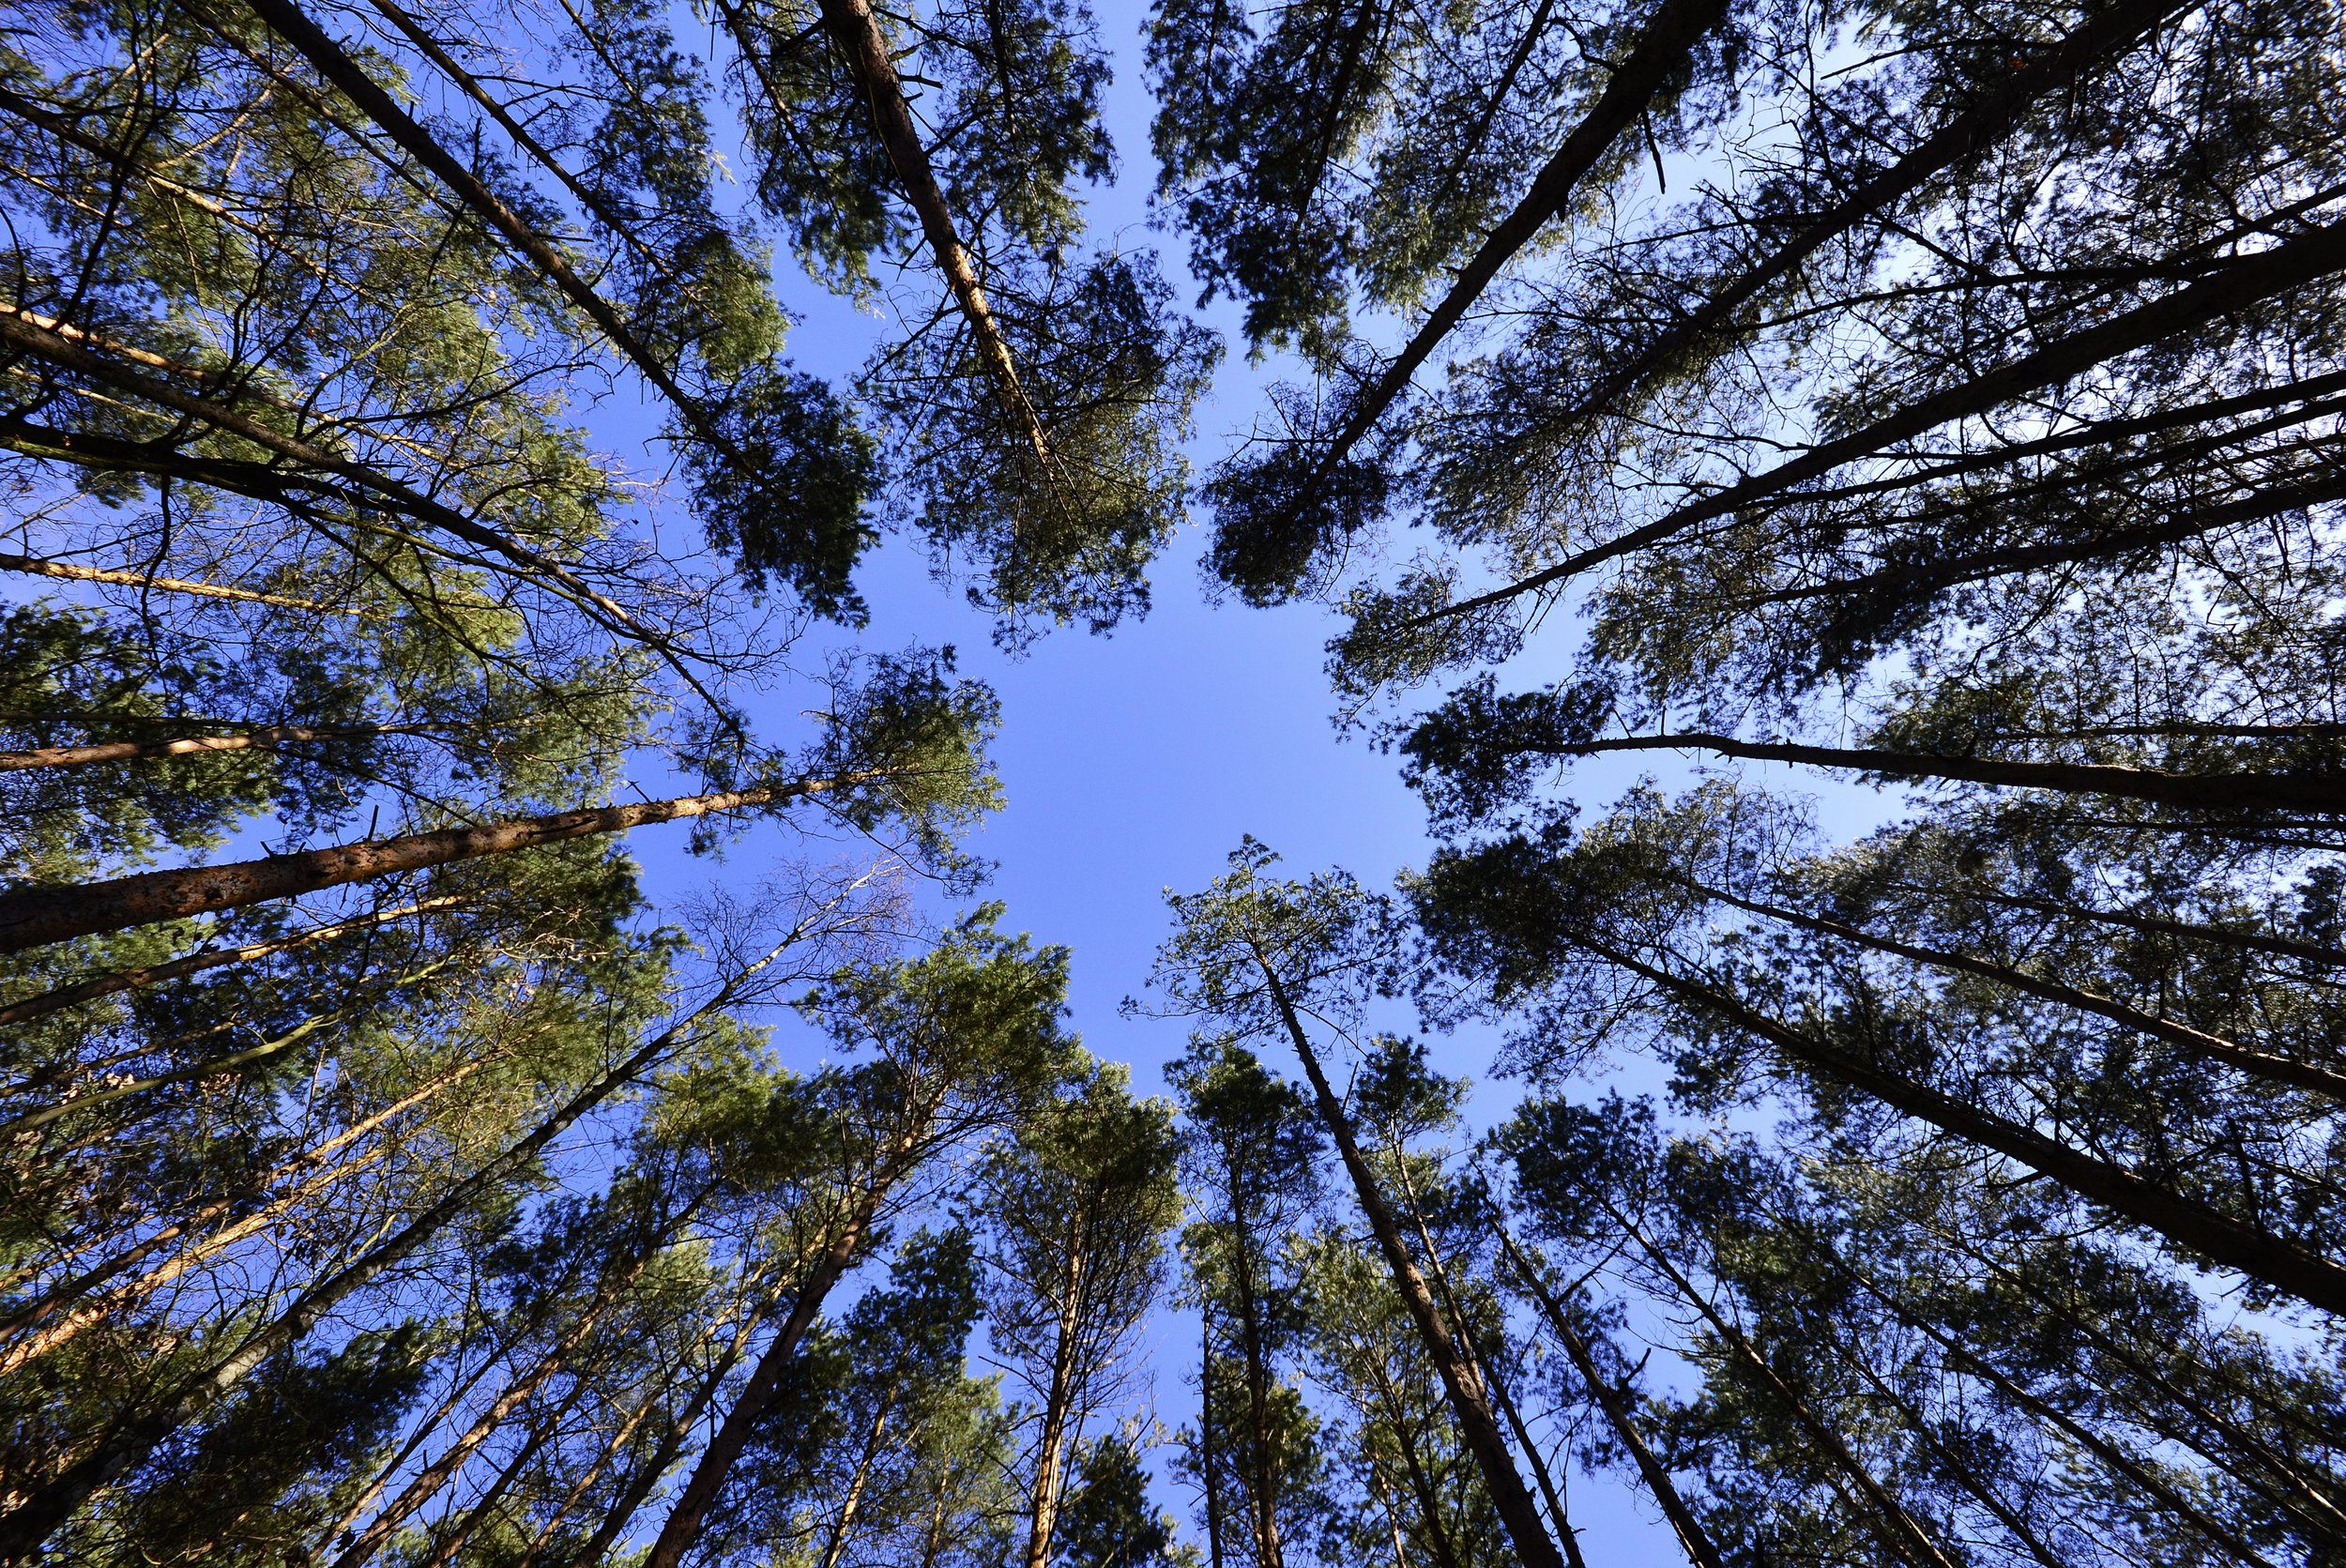 forests-sky-foliage-from-the-bottom-of-the-62301.jpeg